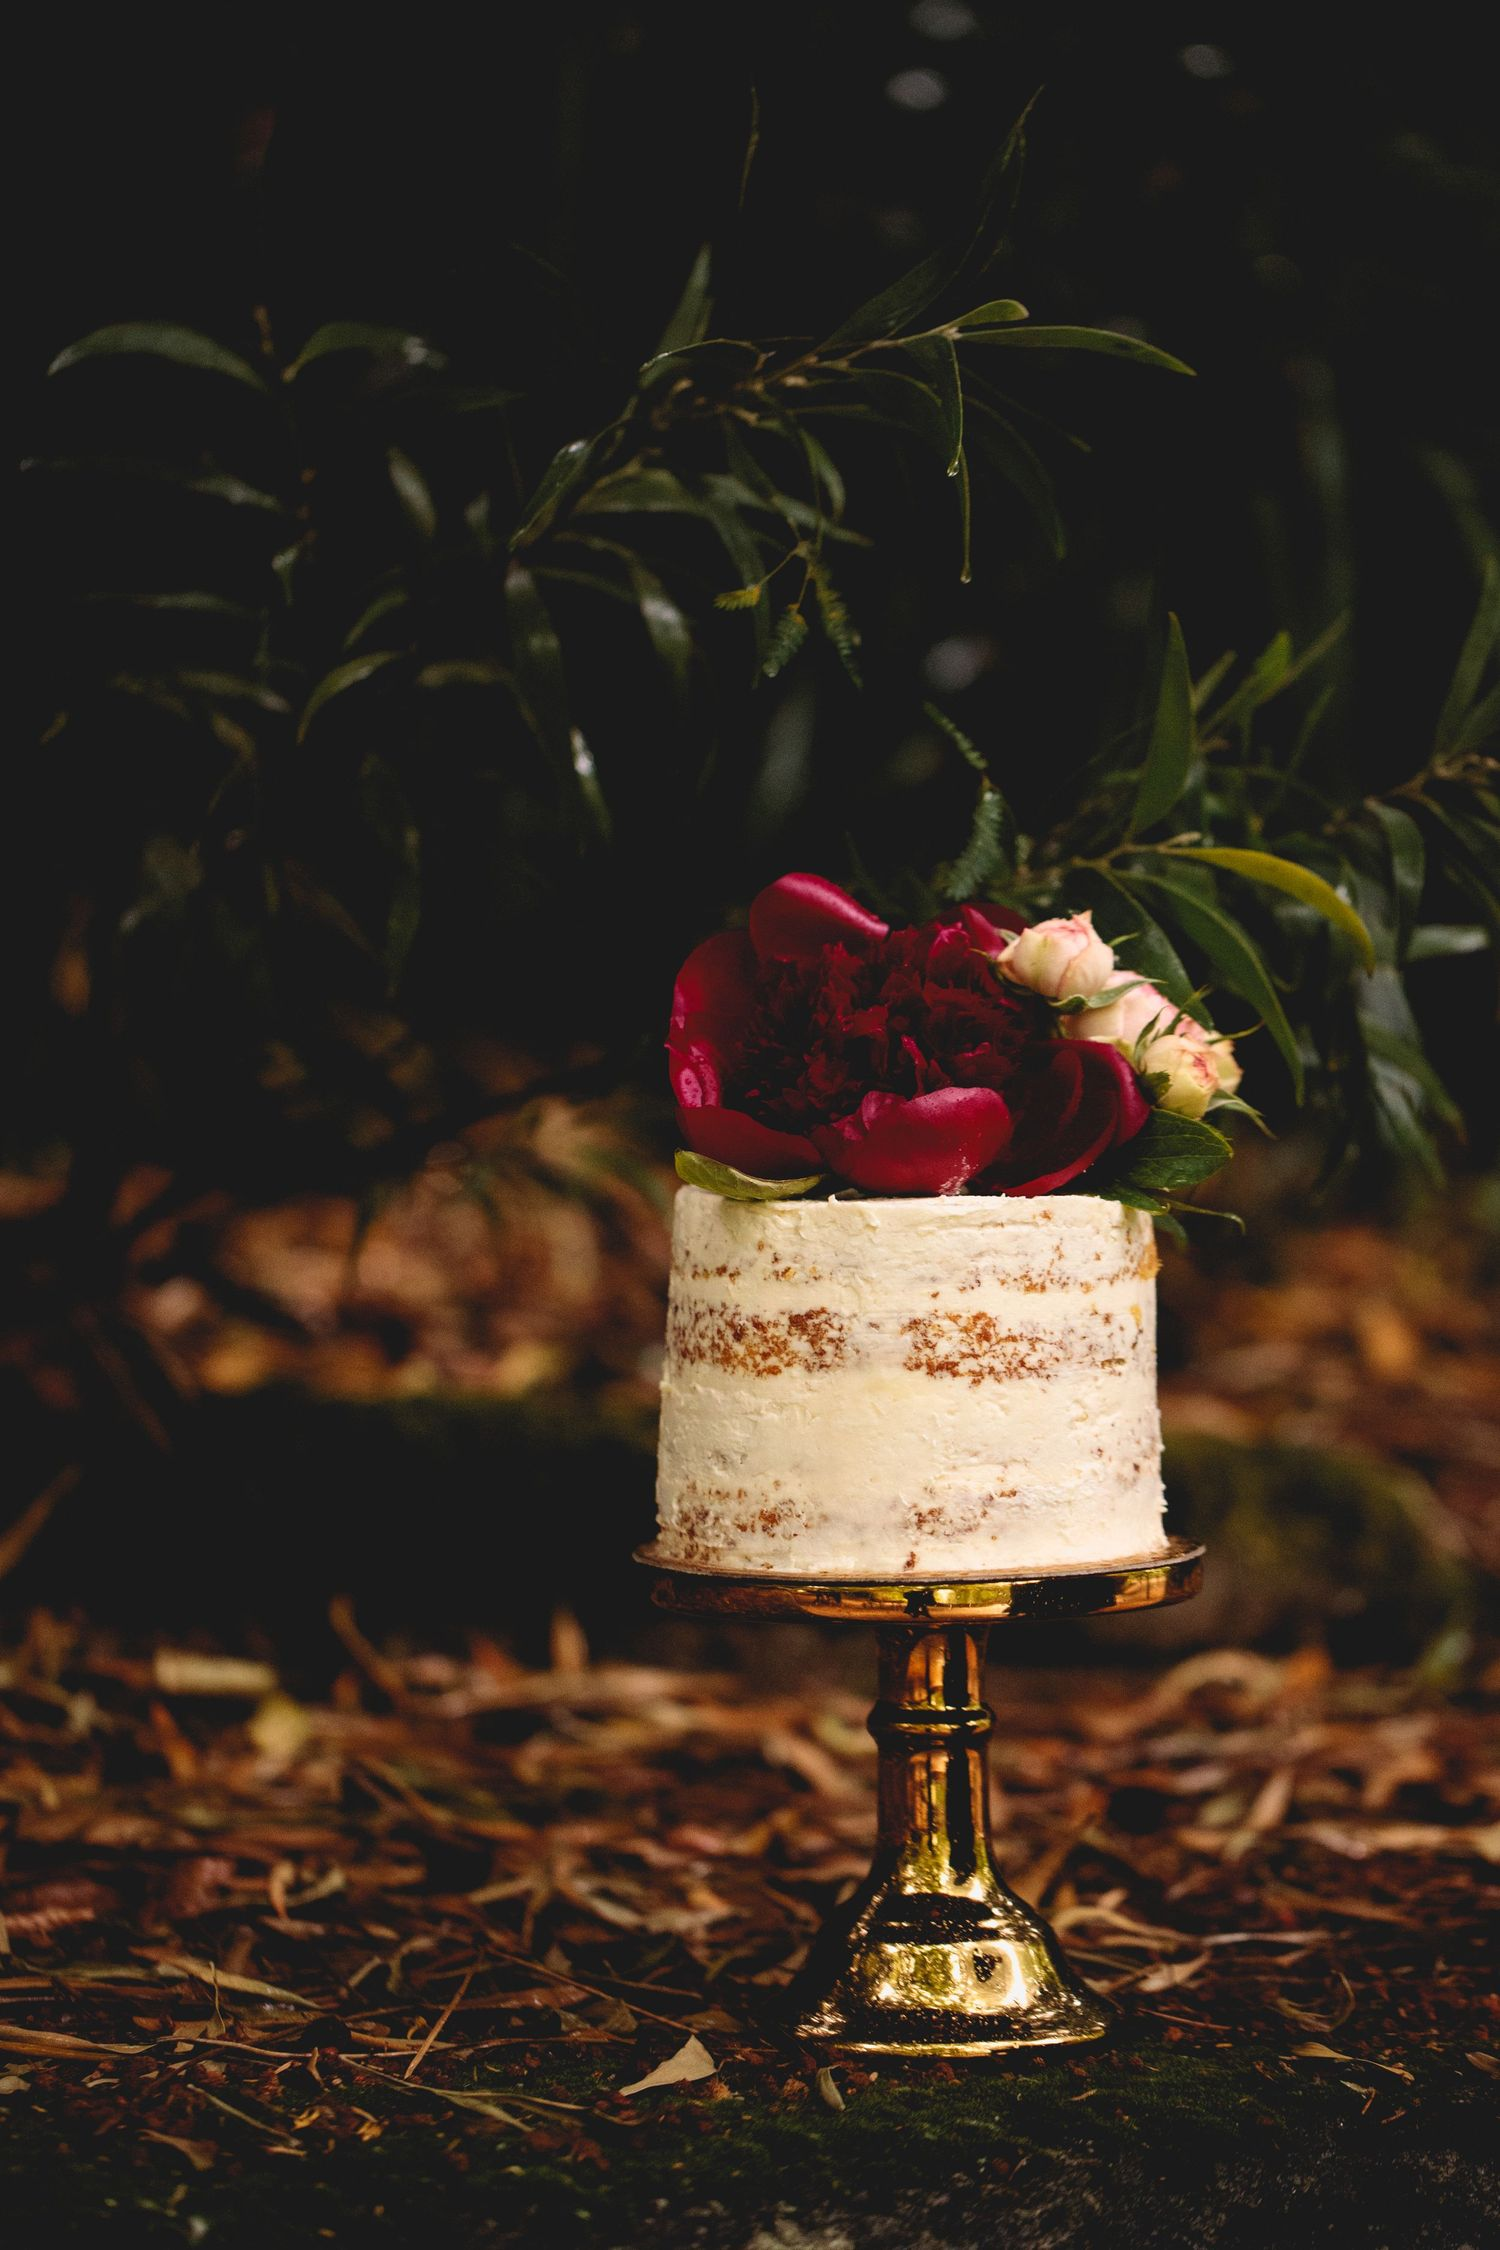 Elopement wedding cake Bolo de casamento a dois elopement wedding portugal